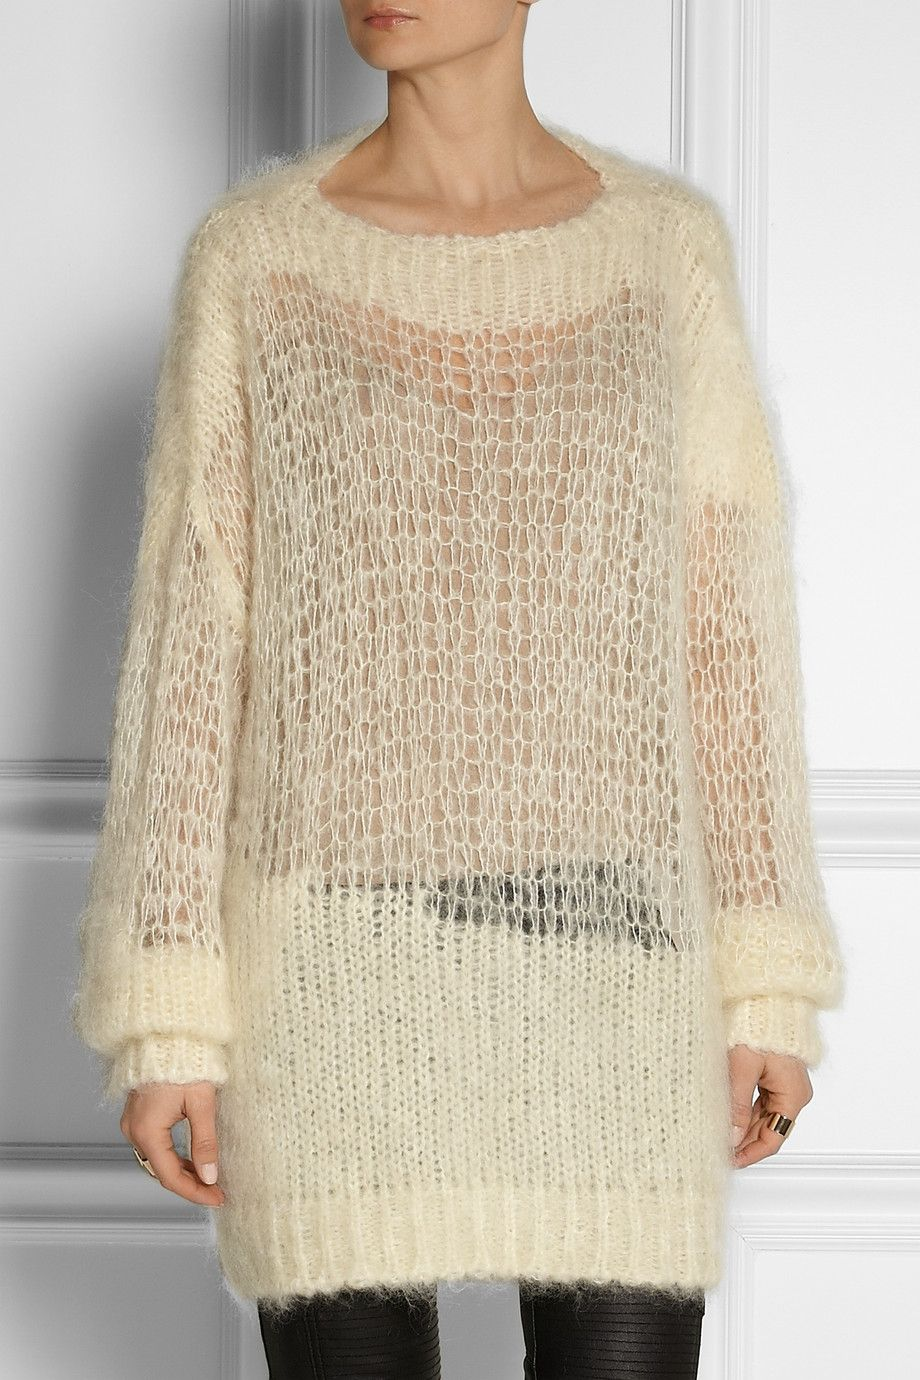 Open Knit Sweater Pattern : Acne Studios Ocean H open-knit mohair-blend sweater ...